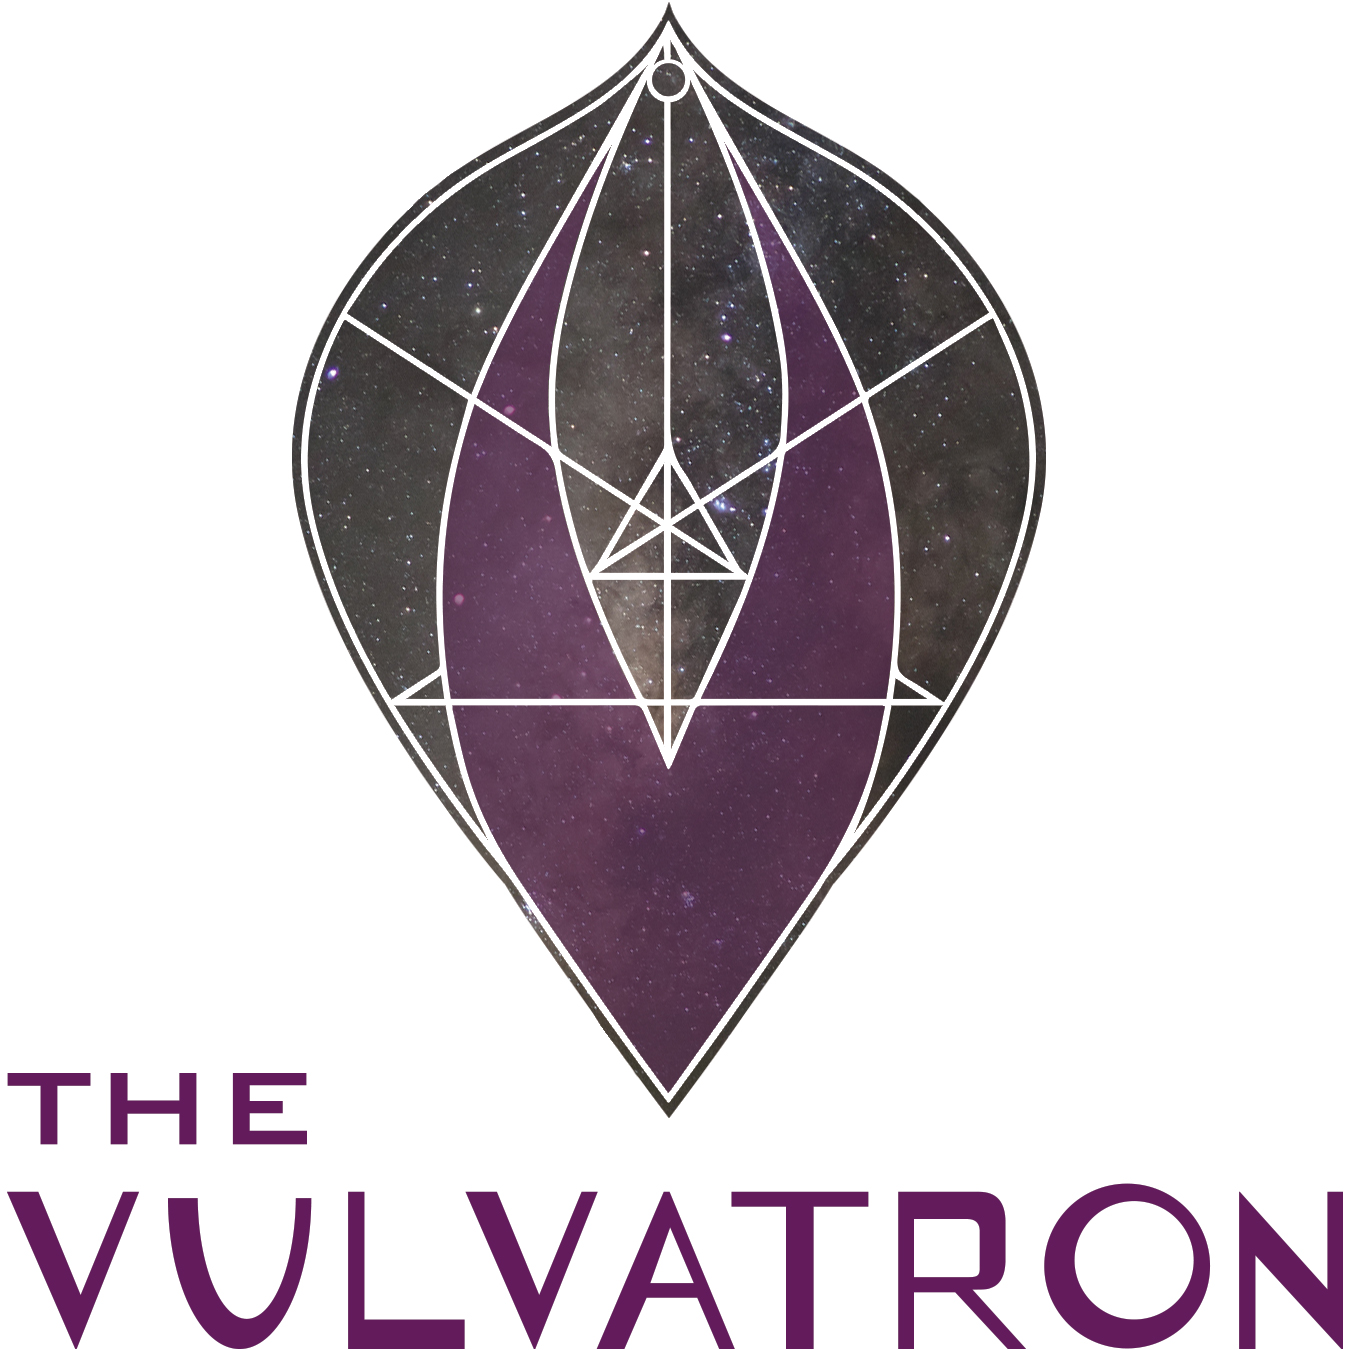 The Vulvatron